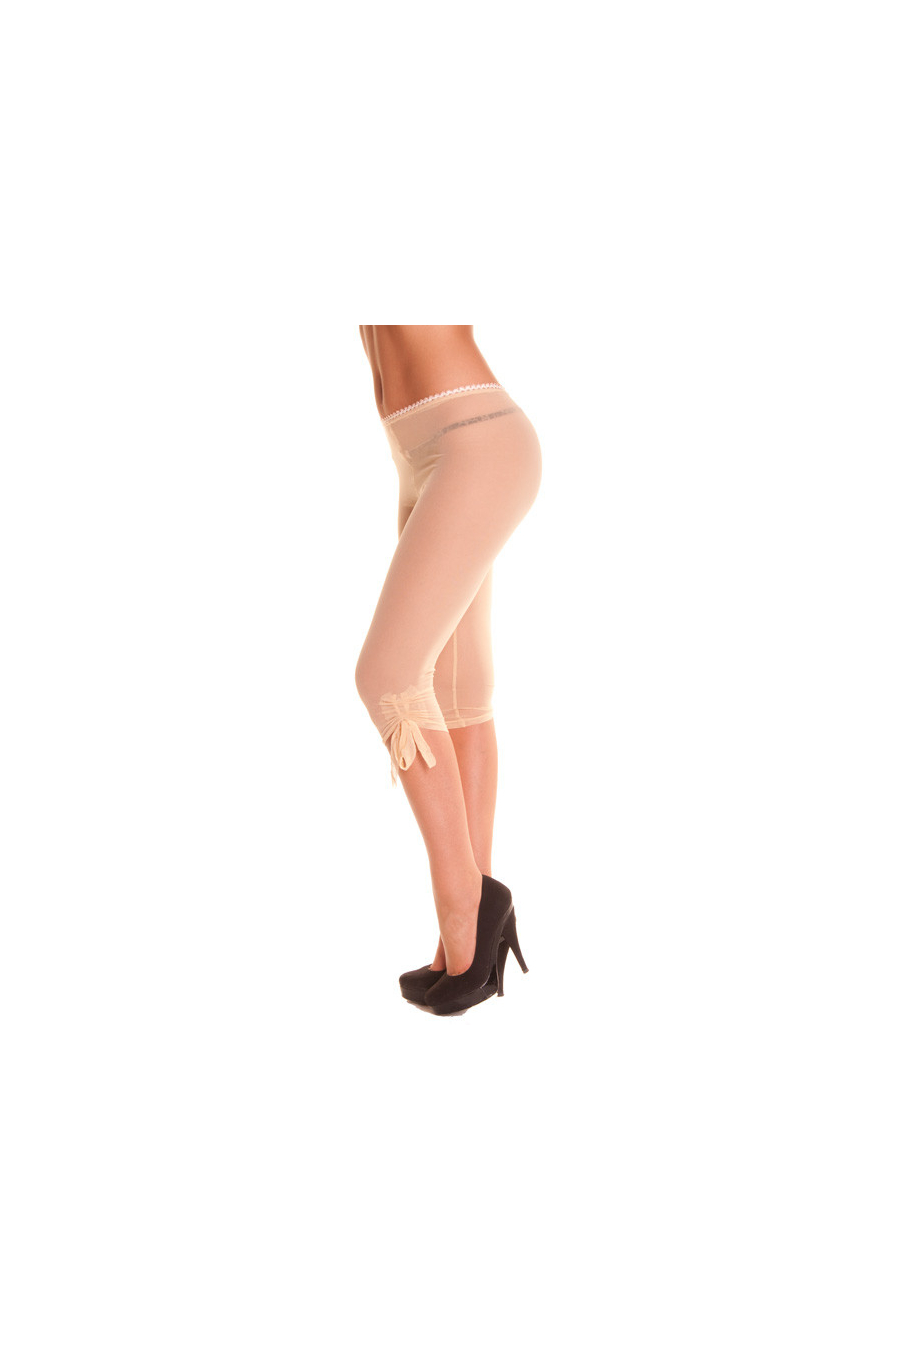 Transparent leggings with knot at the knees.